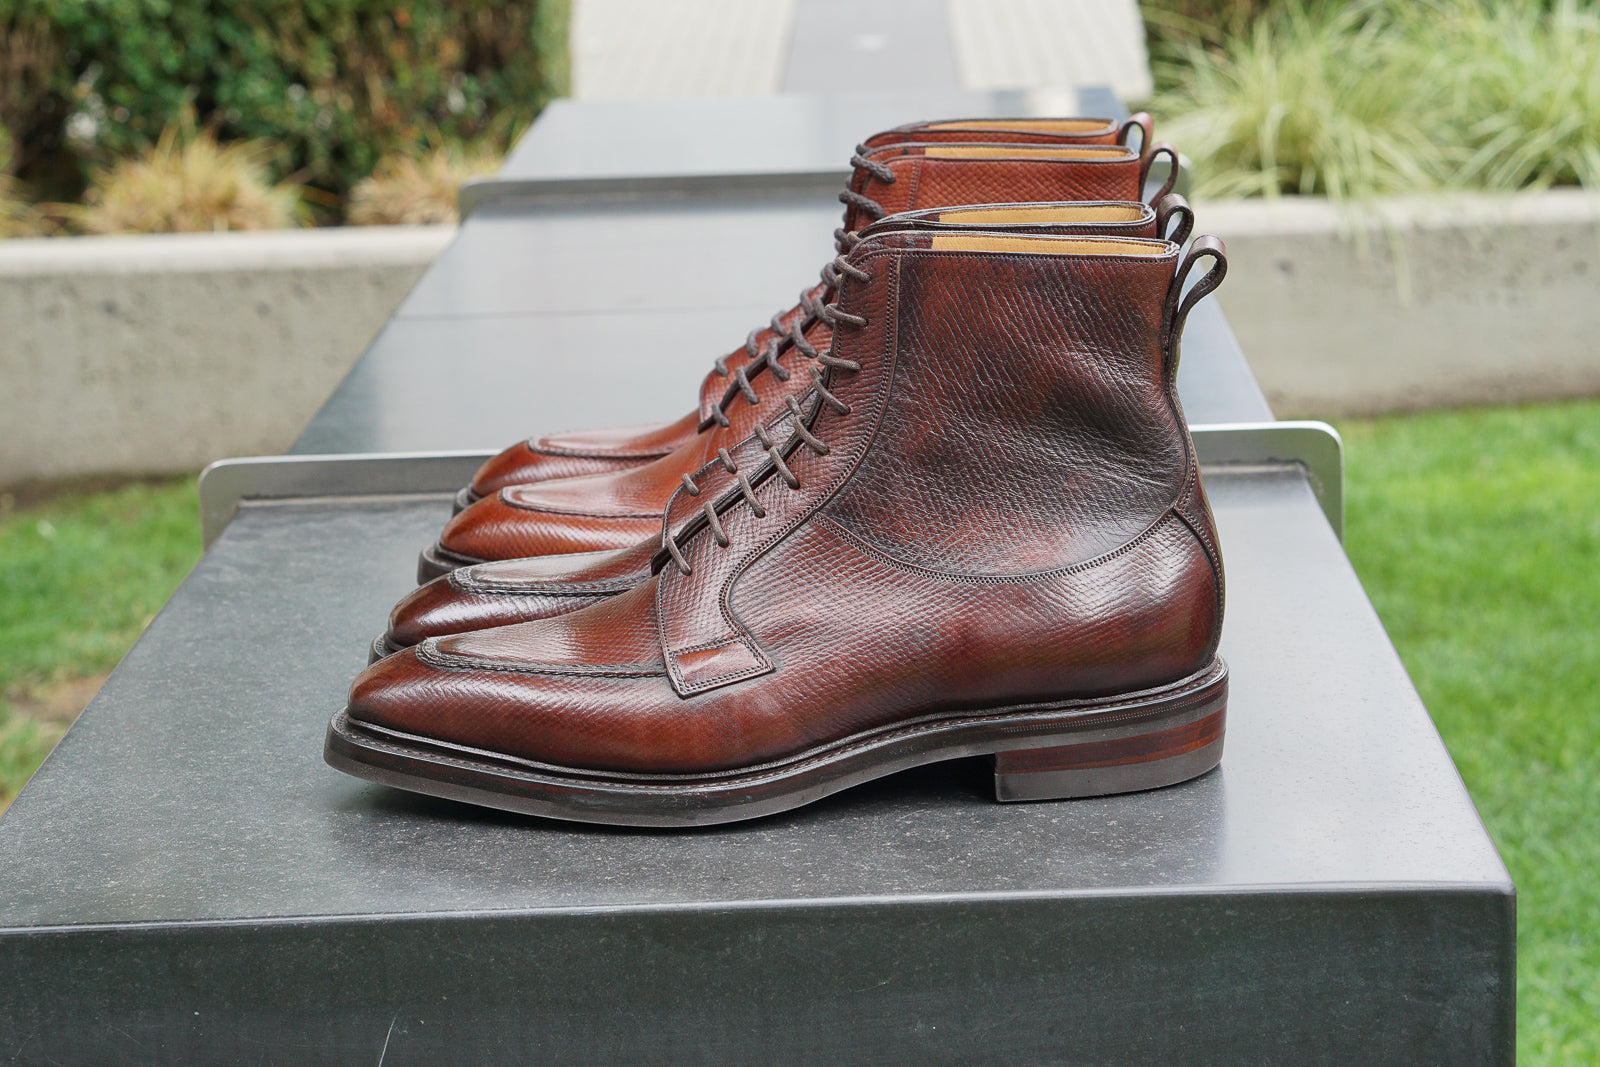 Gaziano & Girling Oak Tan Chestnut Horween Russia Hatchgrain Hatch Grain Thorpe Boots